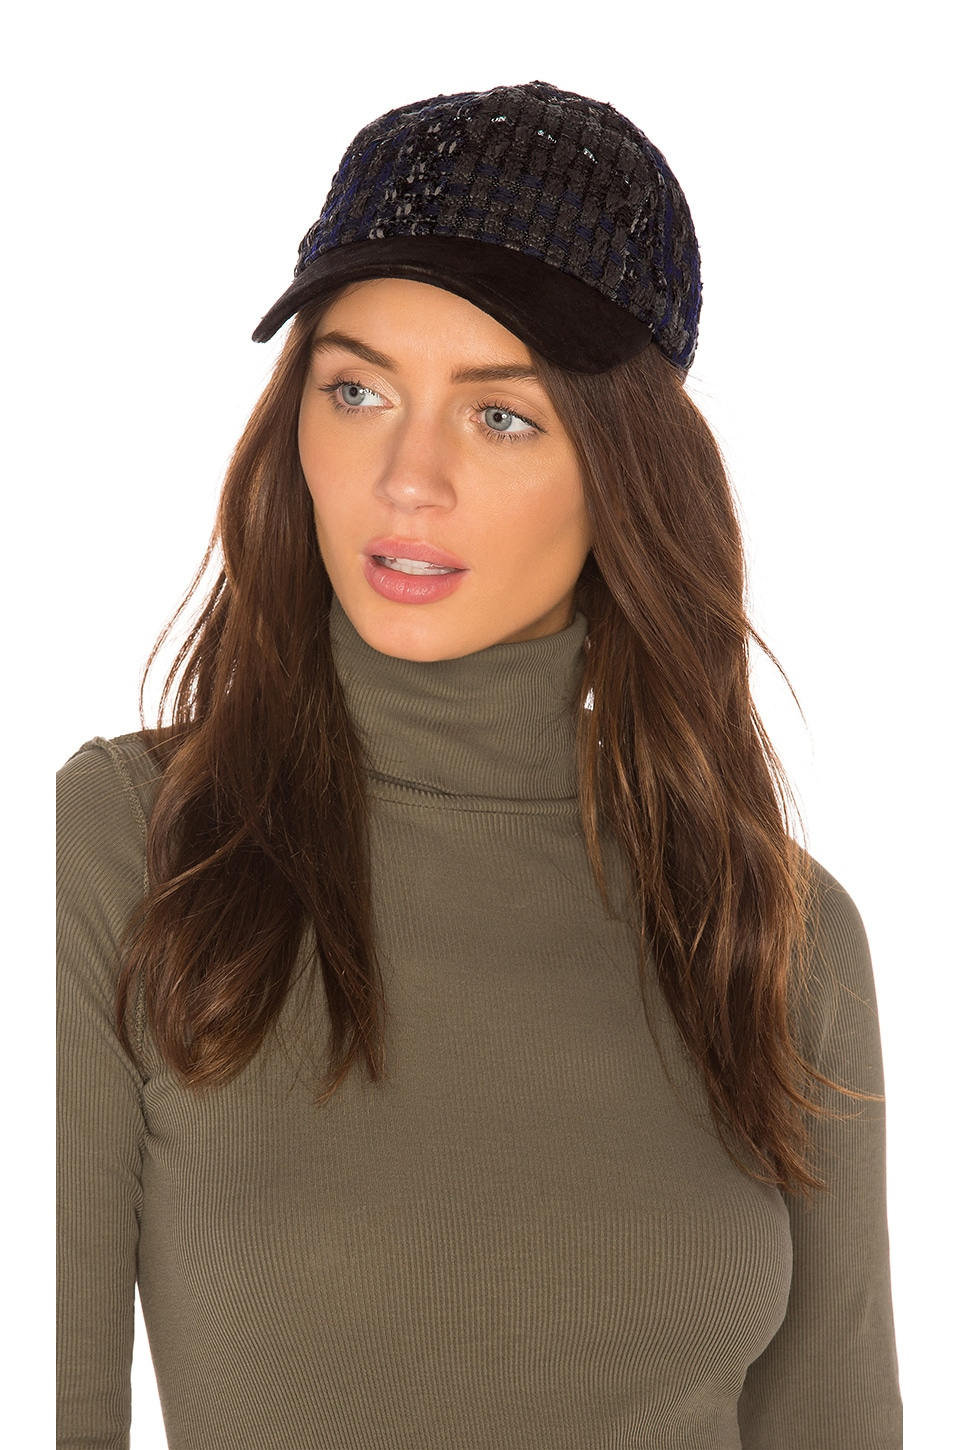 f44206d84b5 Rag   Bone Marilyn Baseball Cap in Blue Tweed